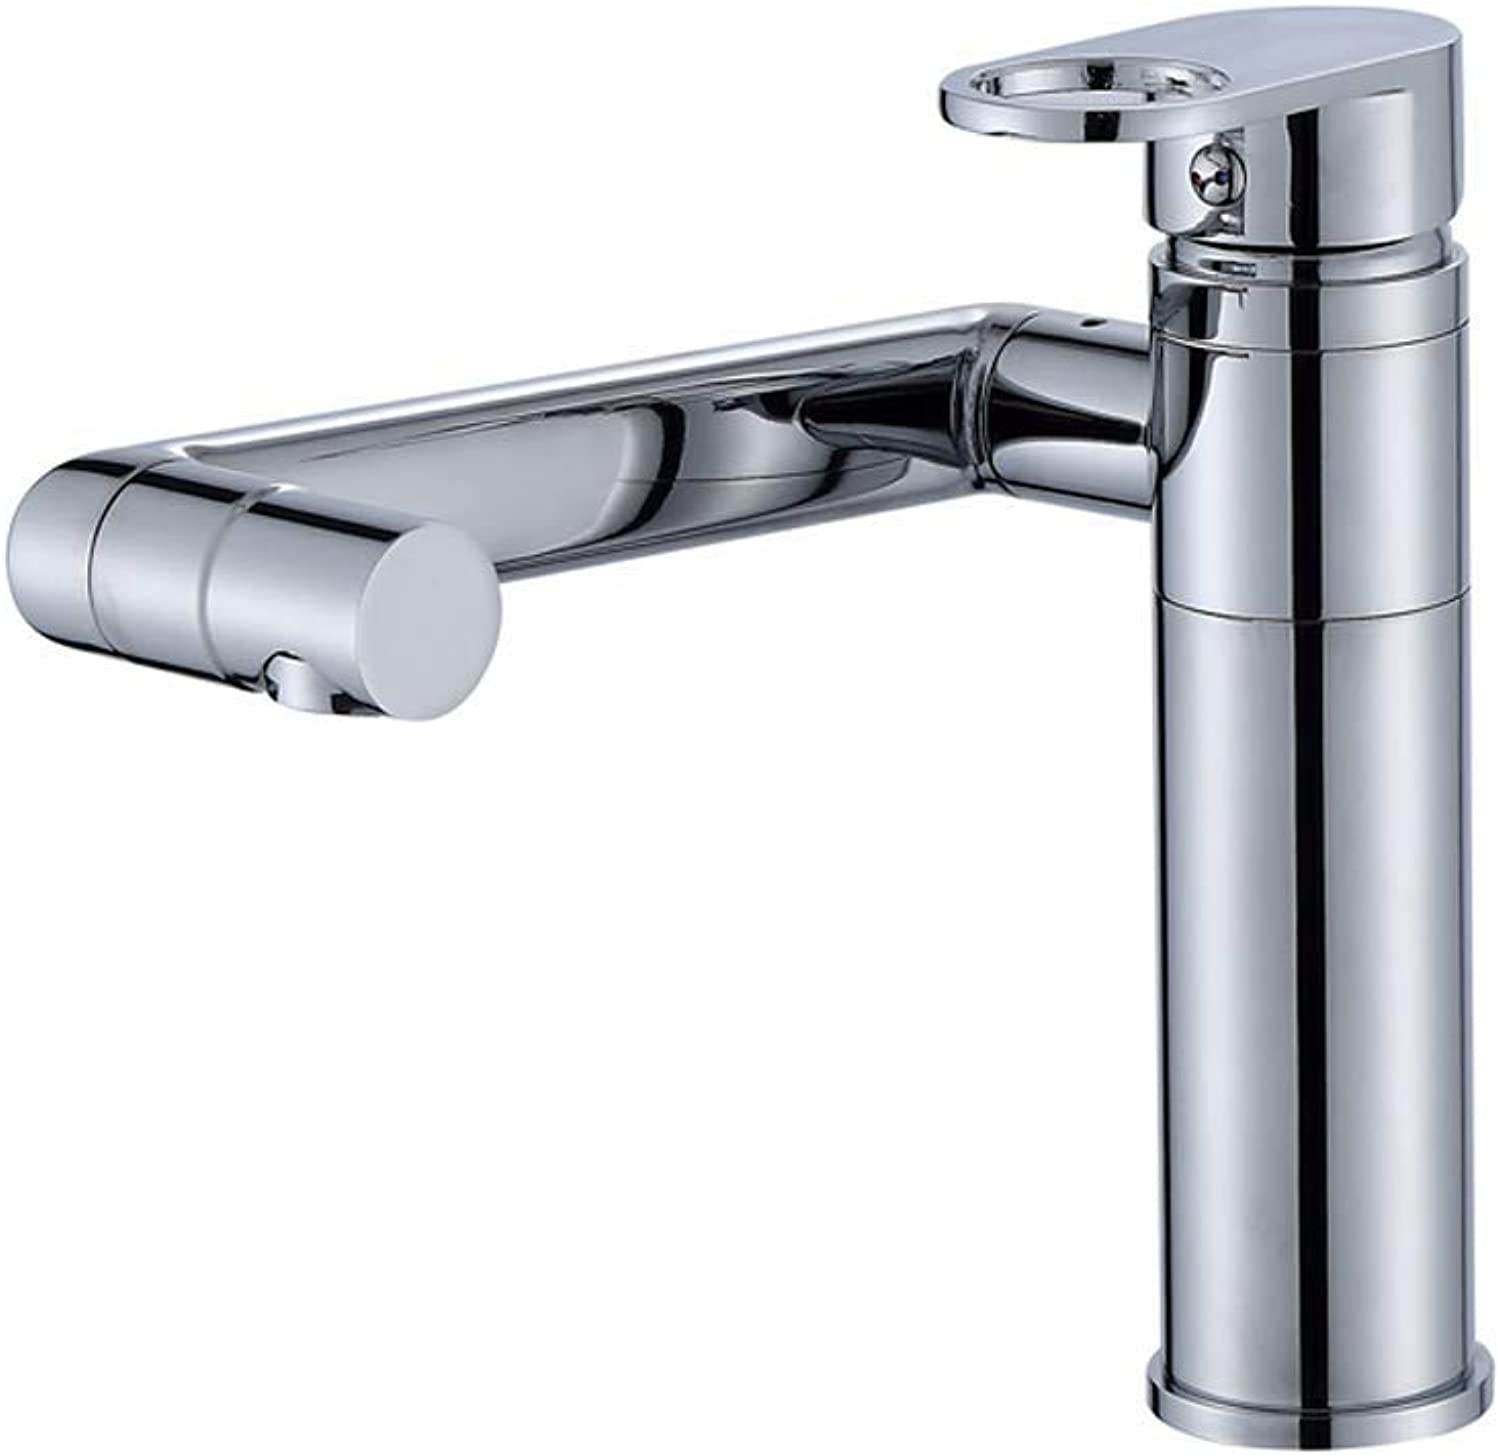 Tap Bathroom Taps, Copper redary Basin Faucet Single Hole Hot And Cold Basin Washbasin Faucet 1 2 Inlet